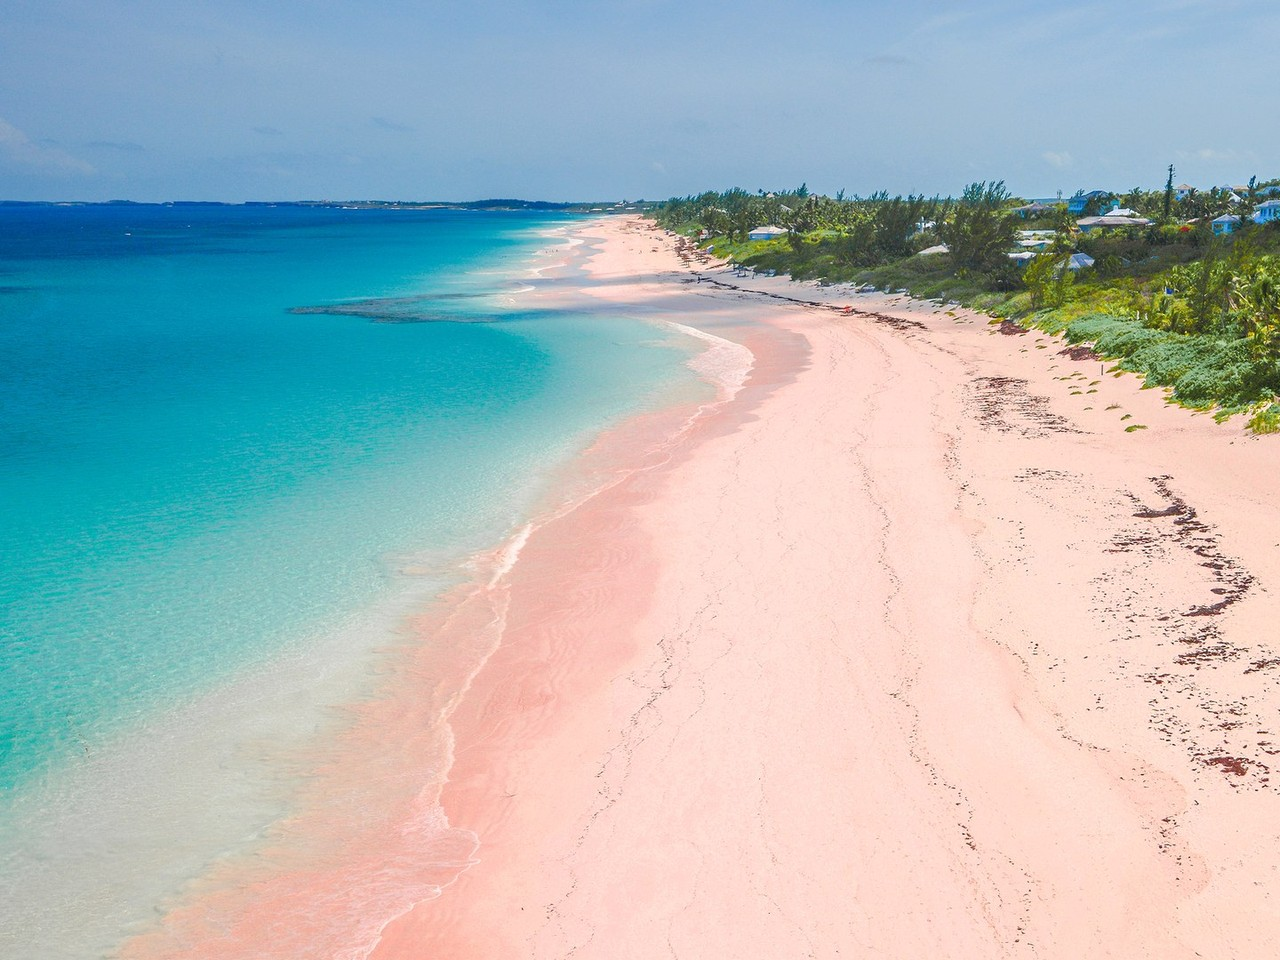 pink-beaches-harbor-island-cr-getty-548295287.jpg